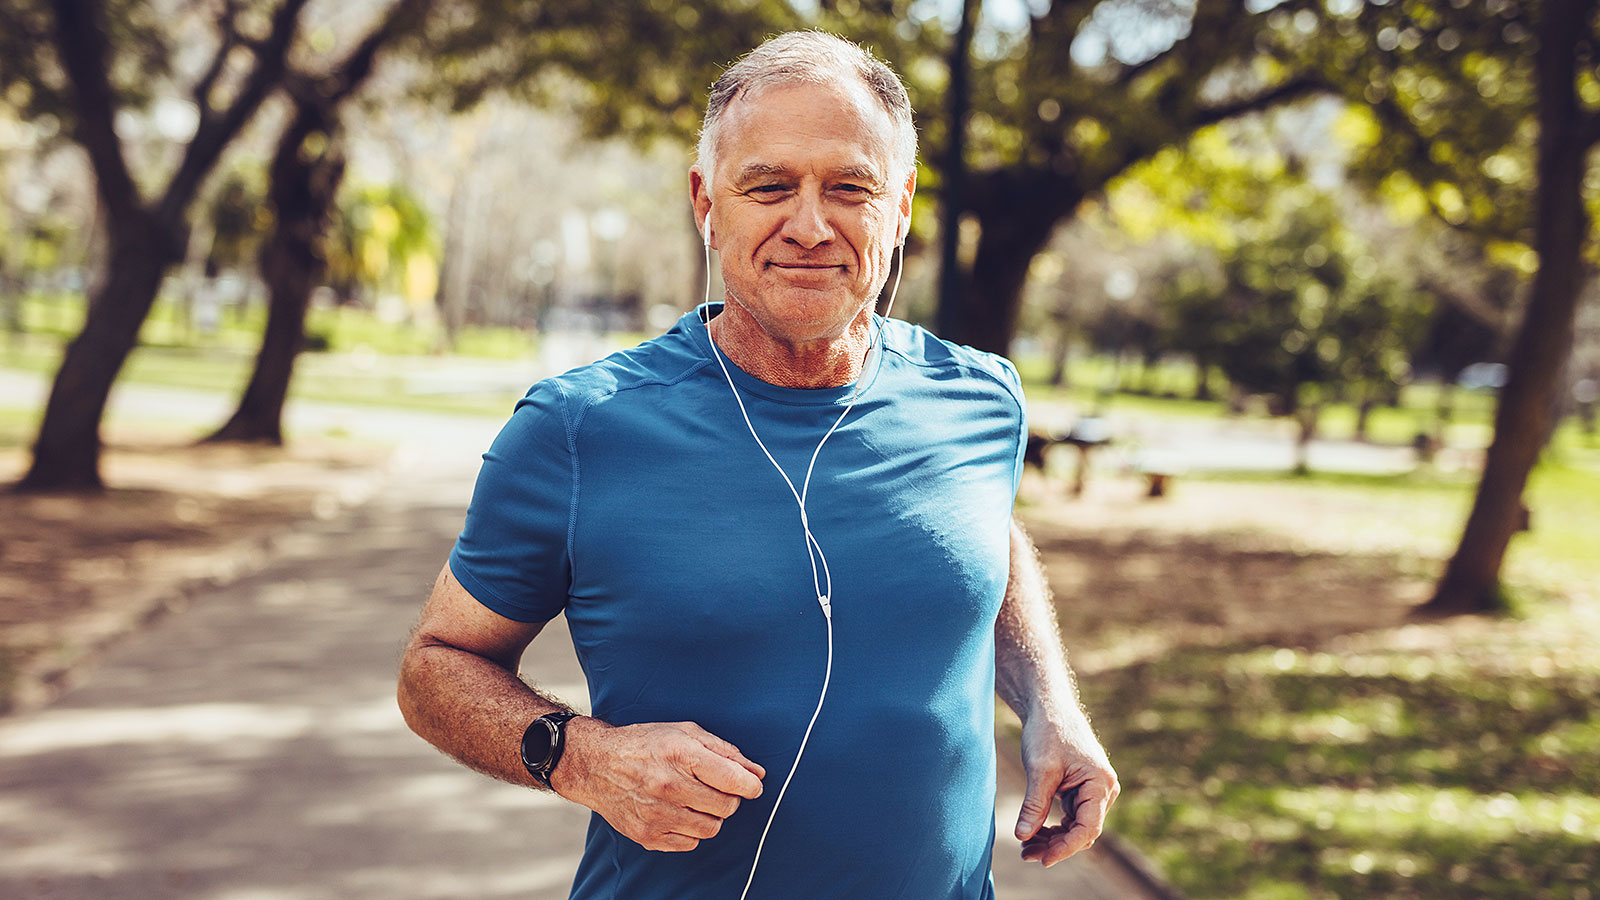 Older adults only need to work out once to get these benefits